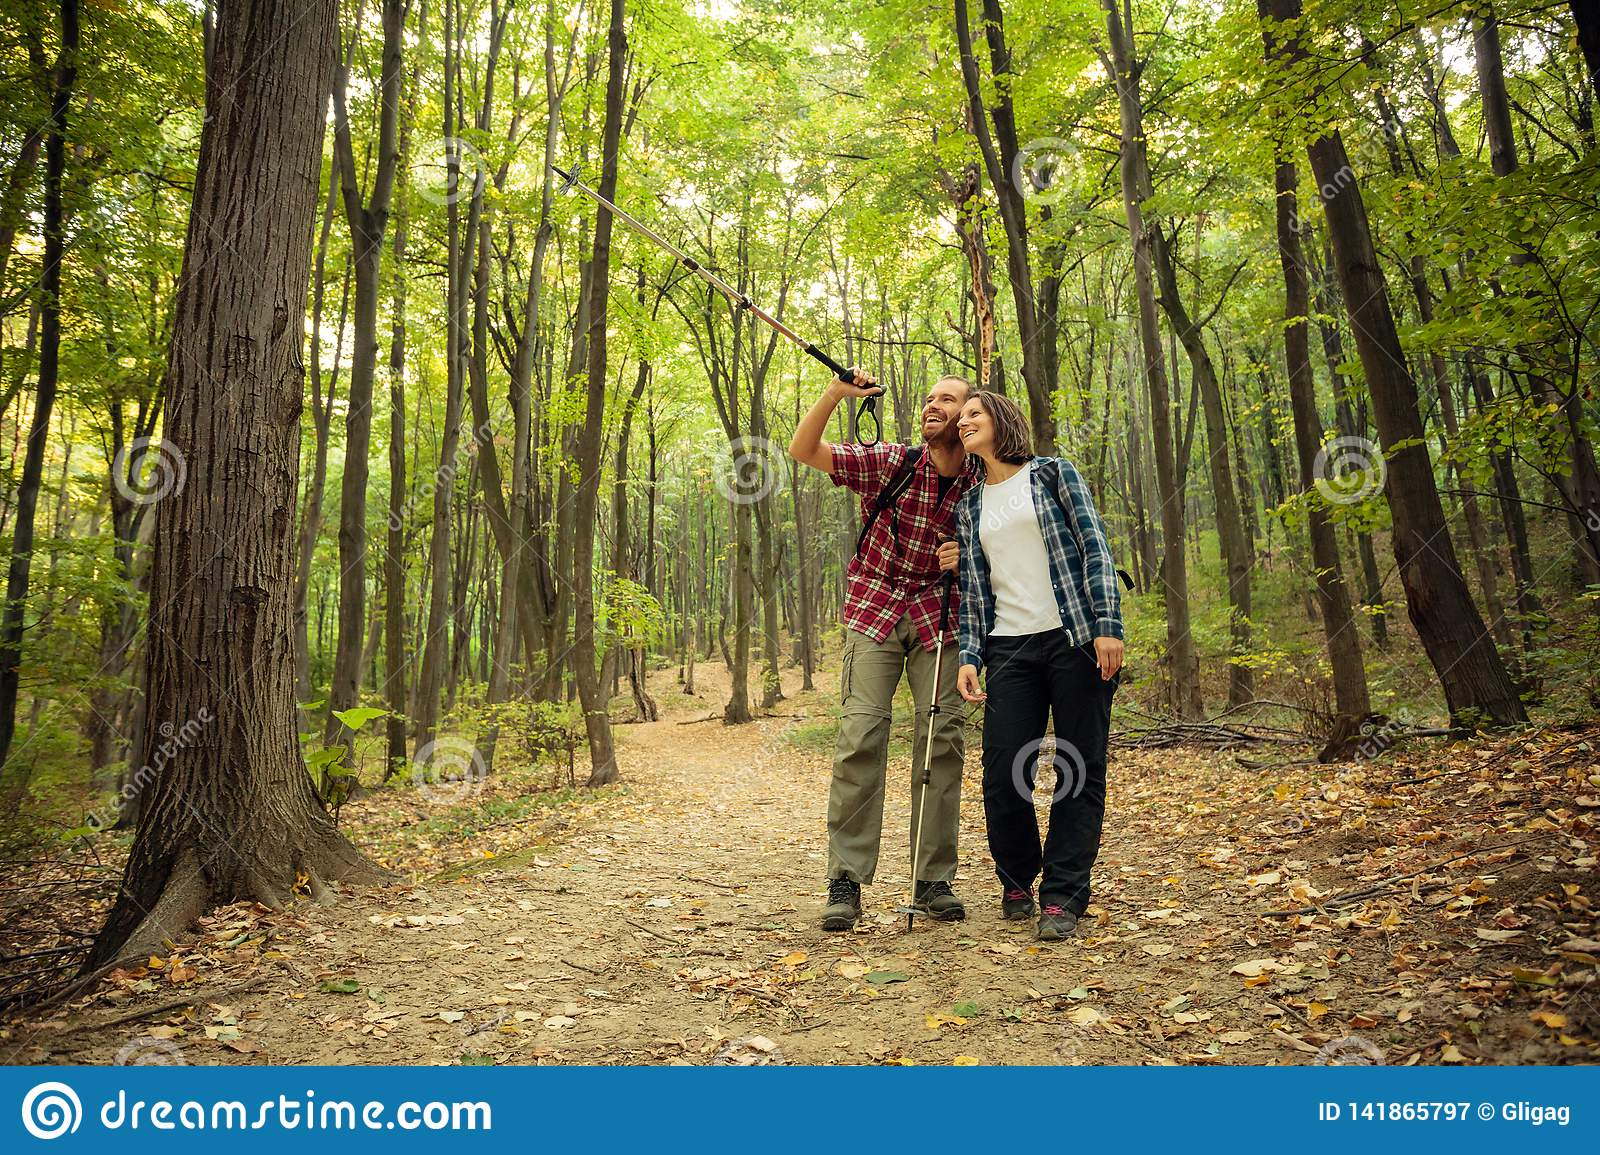 Smiling young couple hiking through forest. Man is pointing to a distance